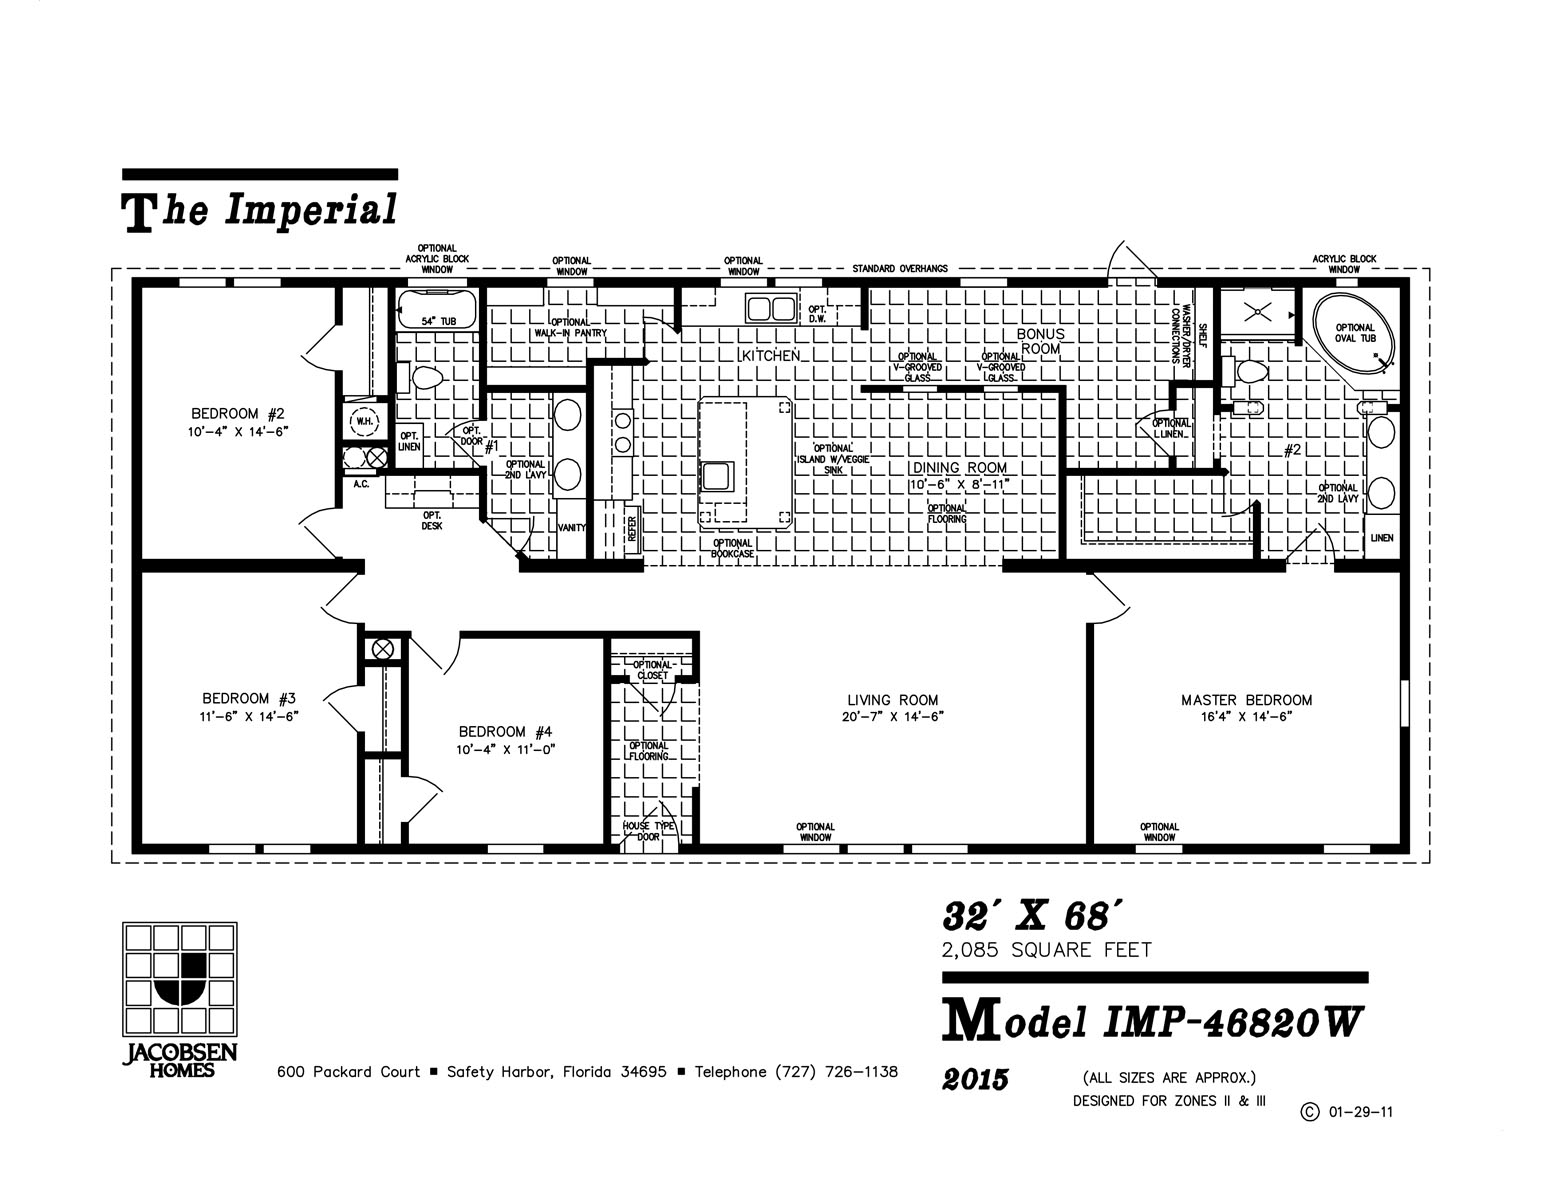 imp-46820w mobile home floor plan